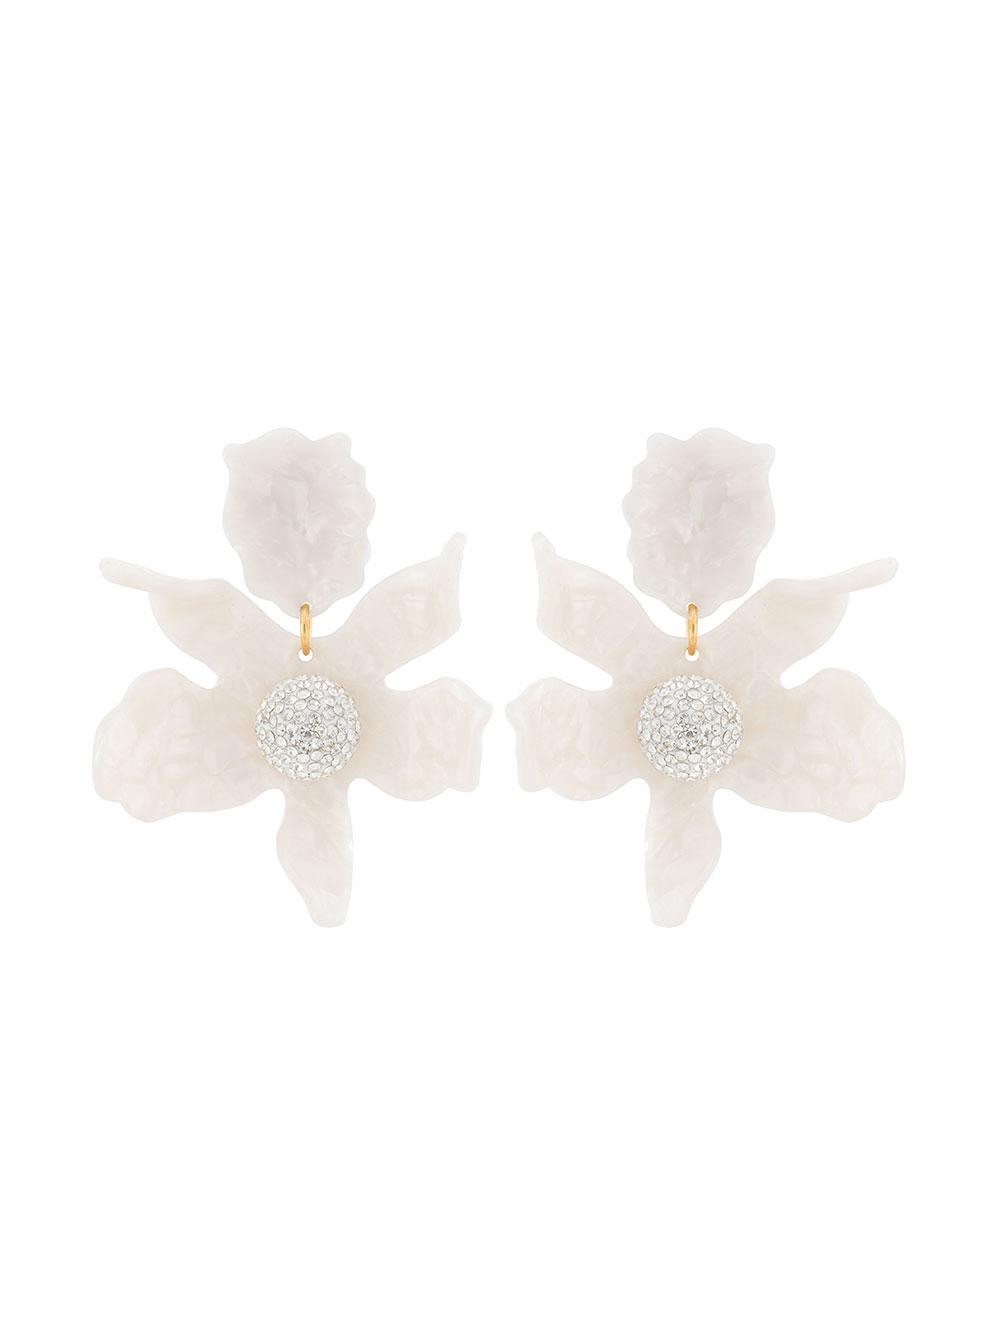 Crystal Lily Clip Earrings Item # LS0349MP-R20